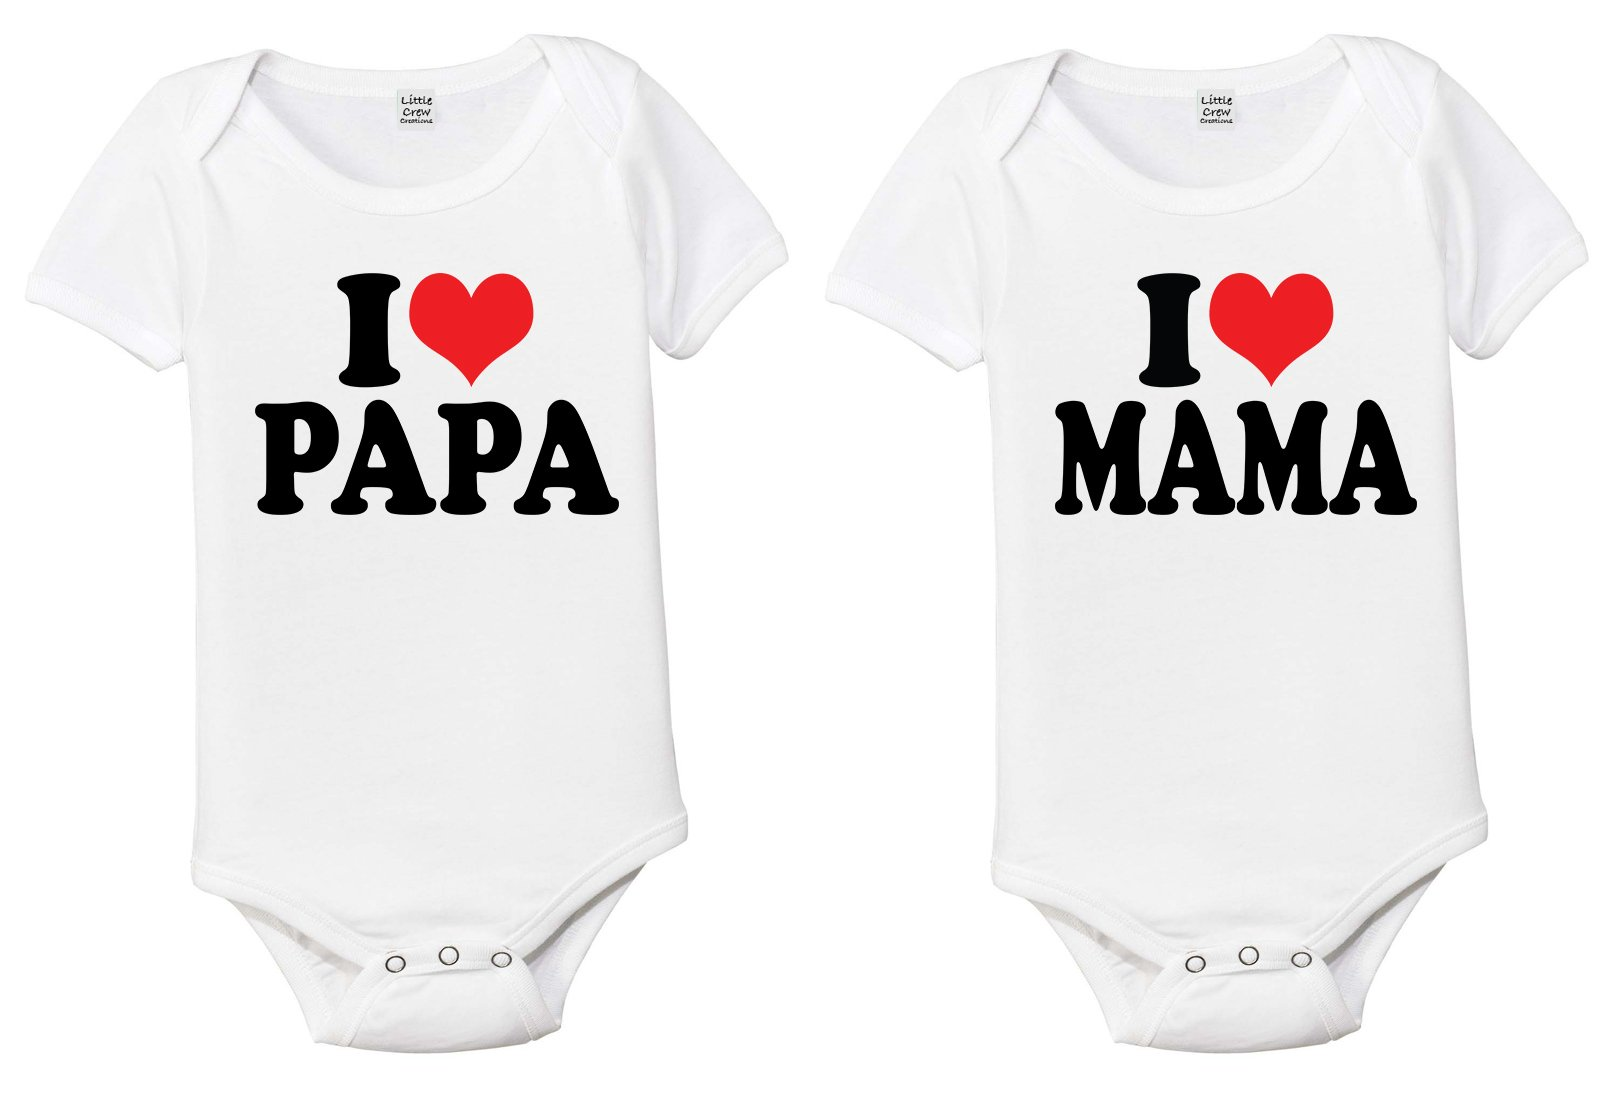 Little Crew Creations Love Papa I Love Mama Baby One-Piece Romper Baby Bodysuit Set